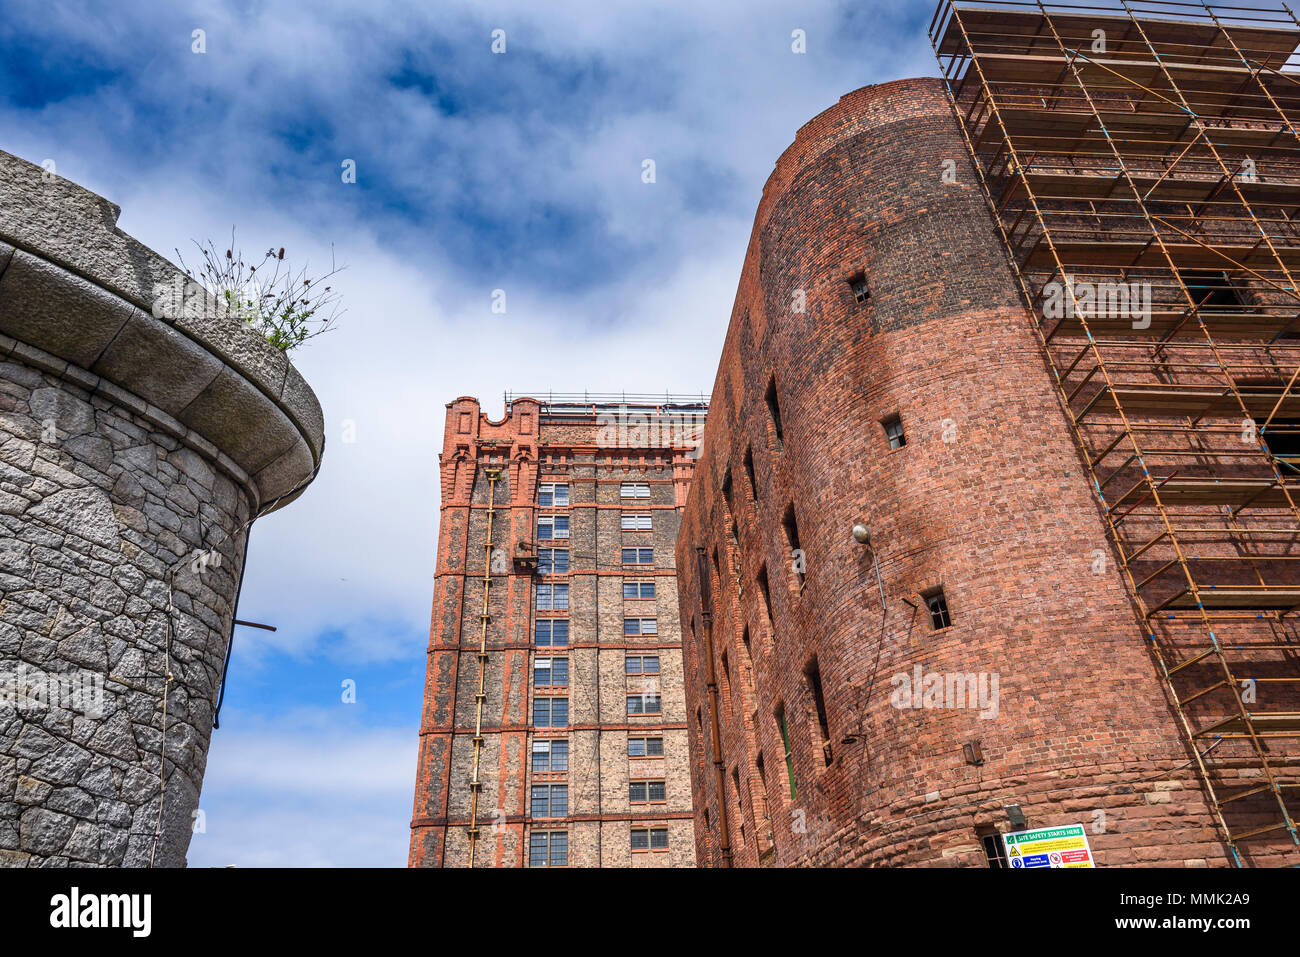 Renovation work on the South Warehouse (1852-55) and Stanley Dock Tobacco Warehouse (1901) Regent Road, Liverpool, Merseyside, England, UK April 2018. Stock Photo